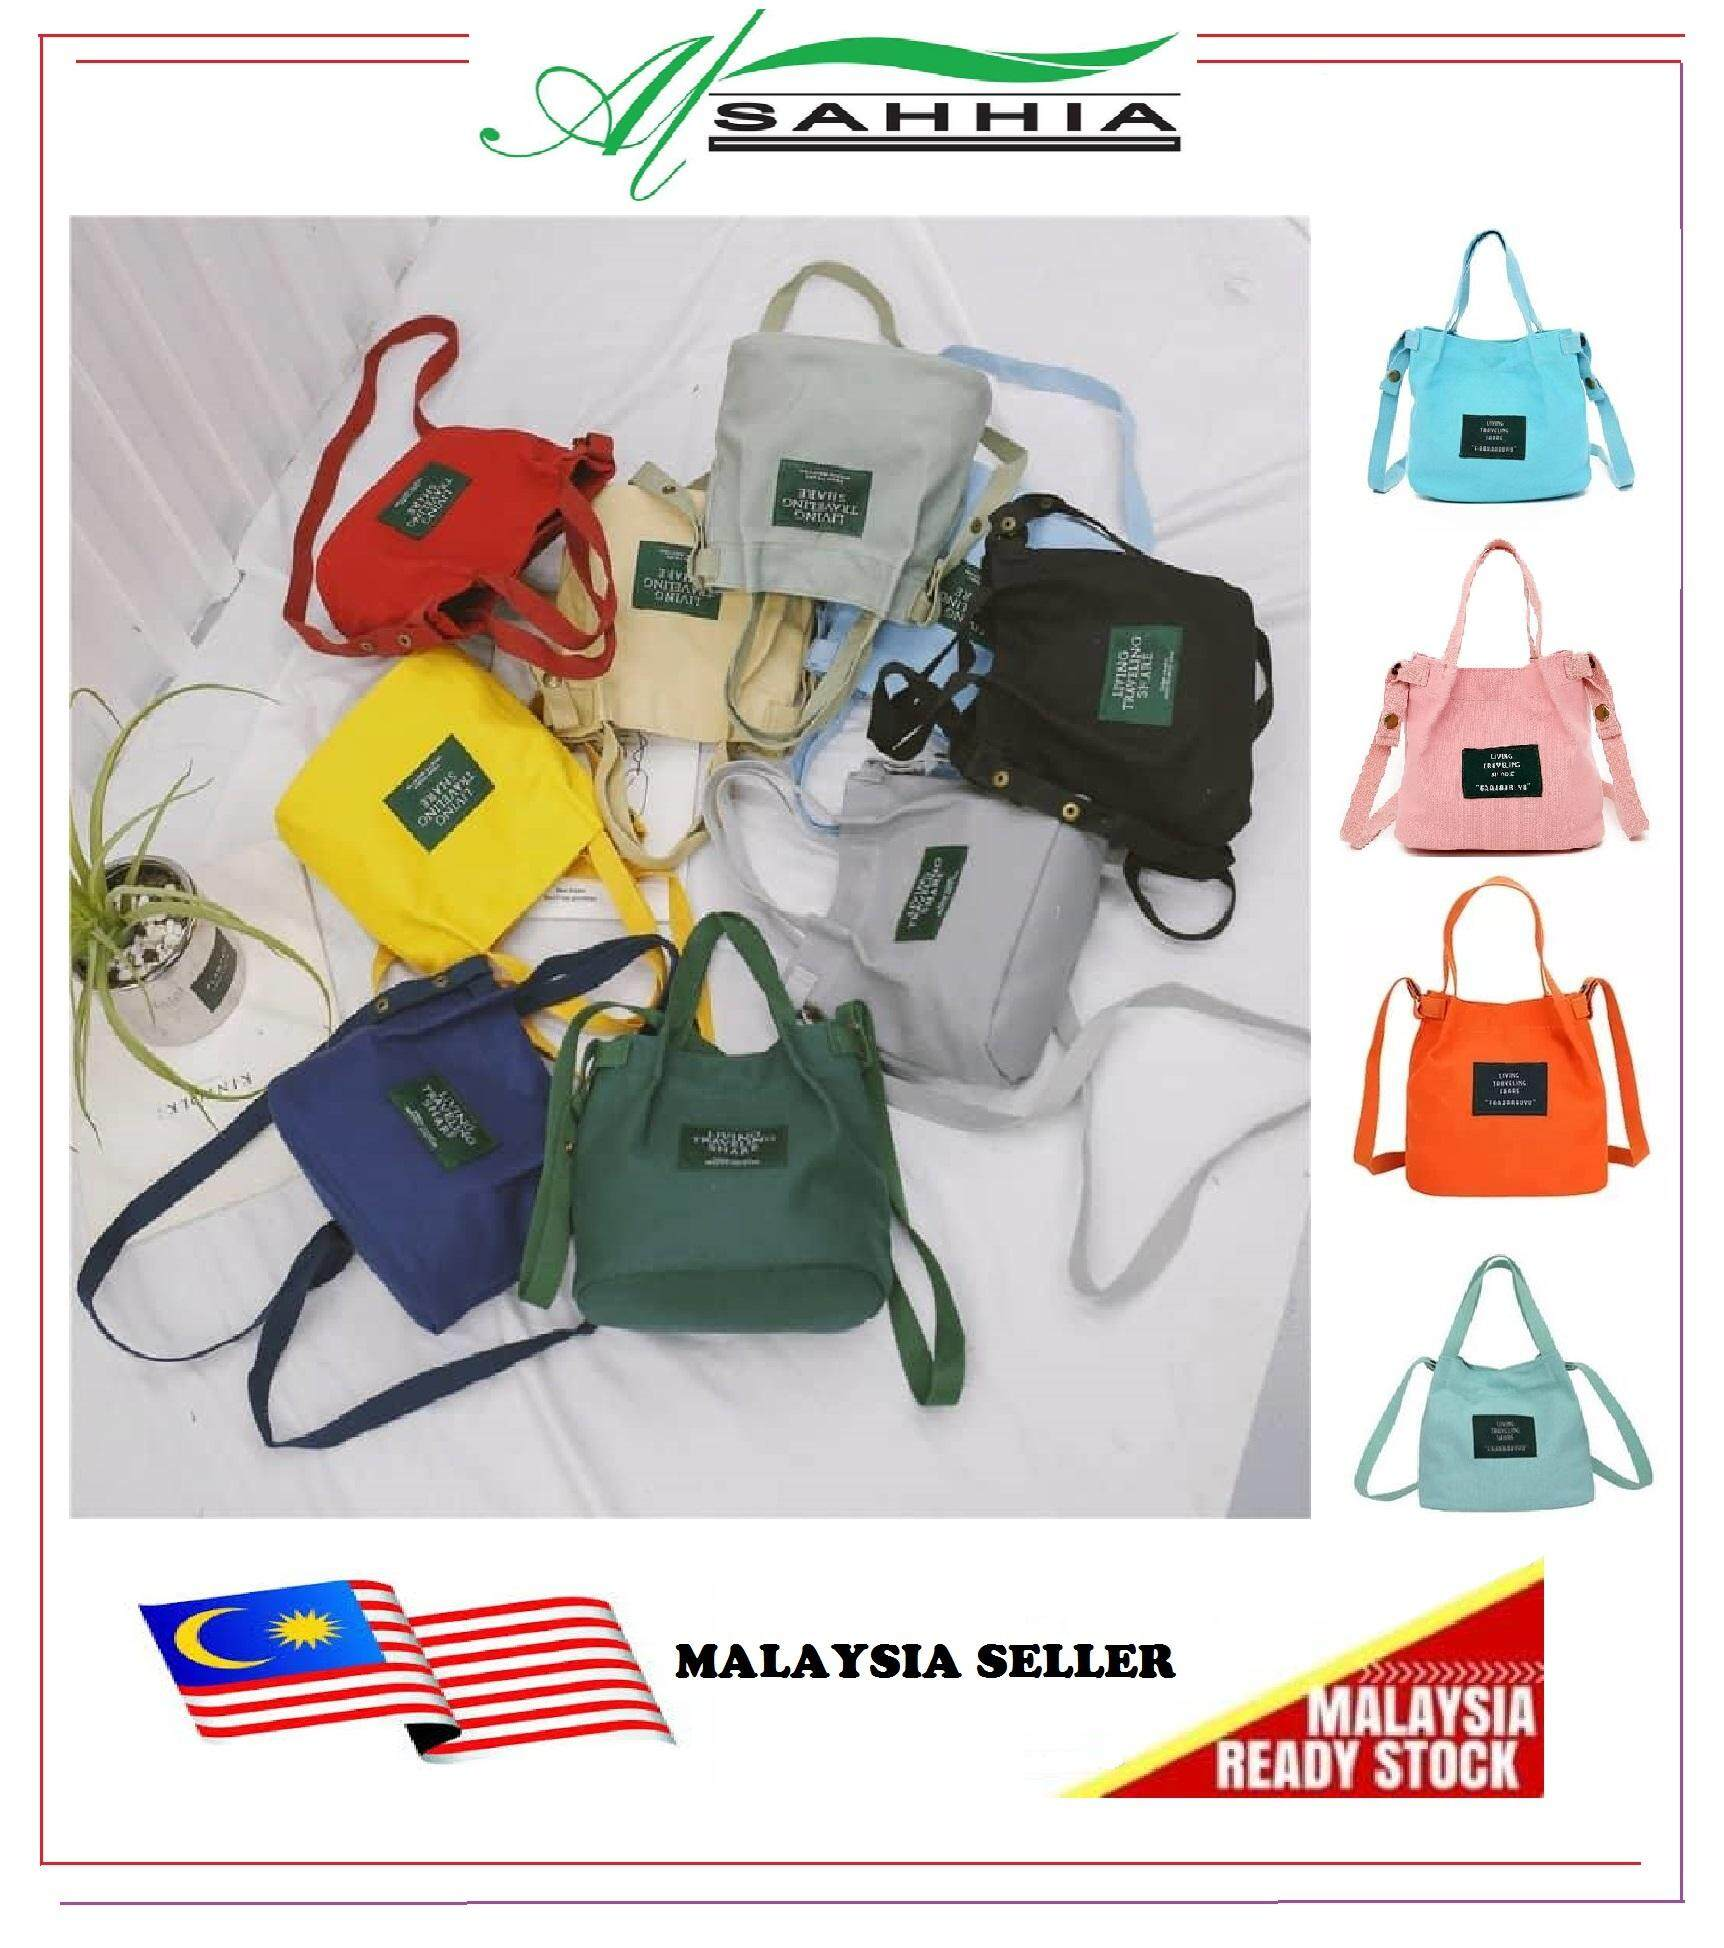 Latest Women s Bags Only on Lazada Malaysia! b7dbd3b590a29